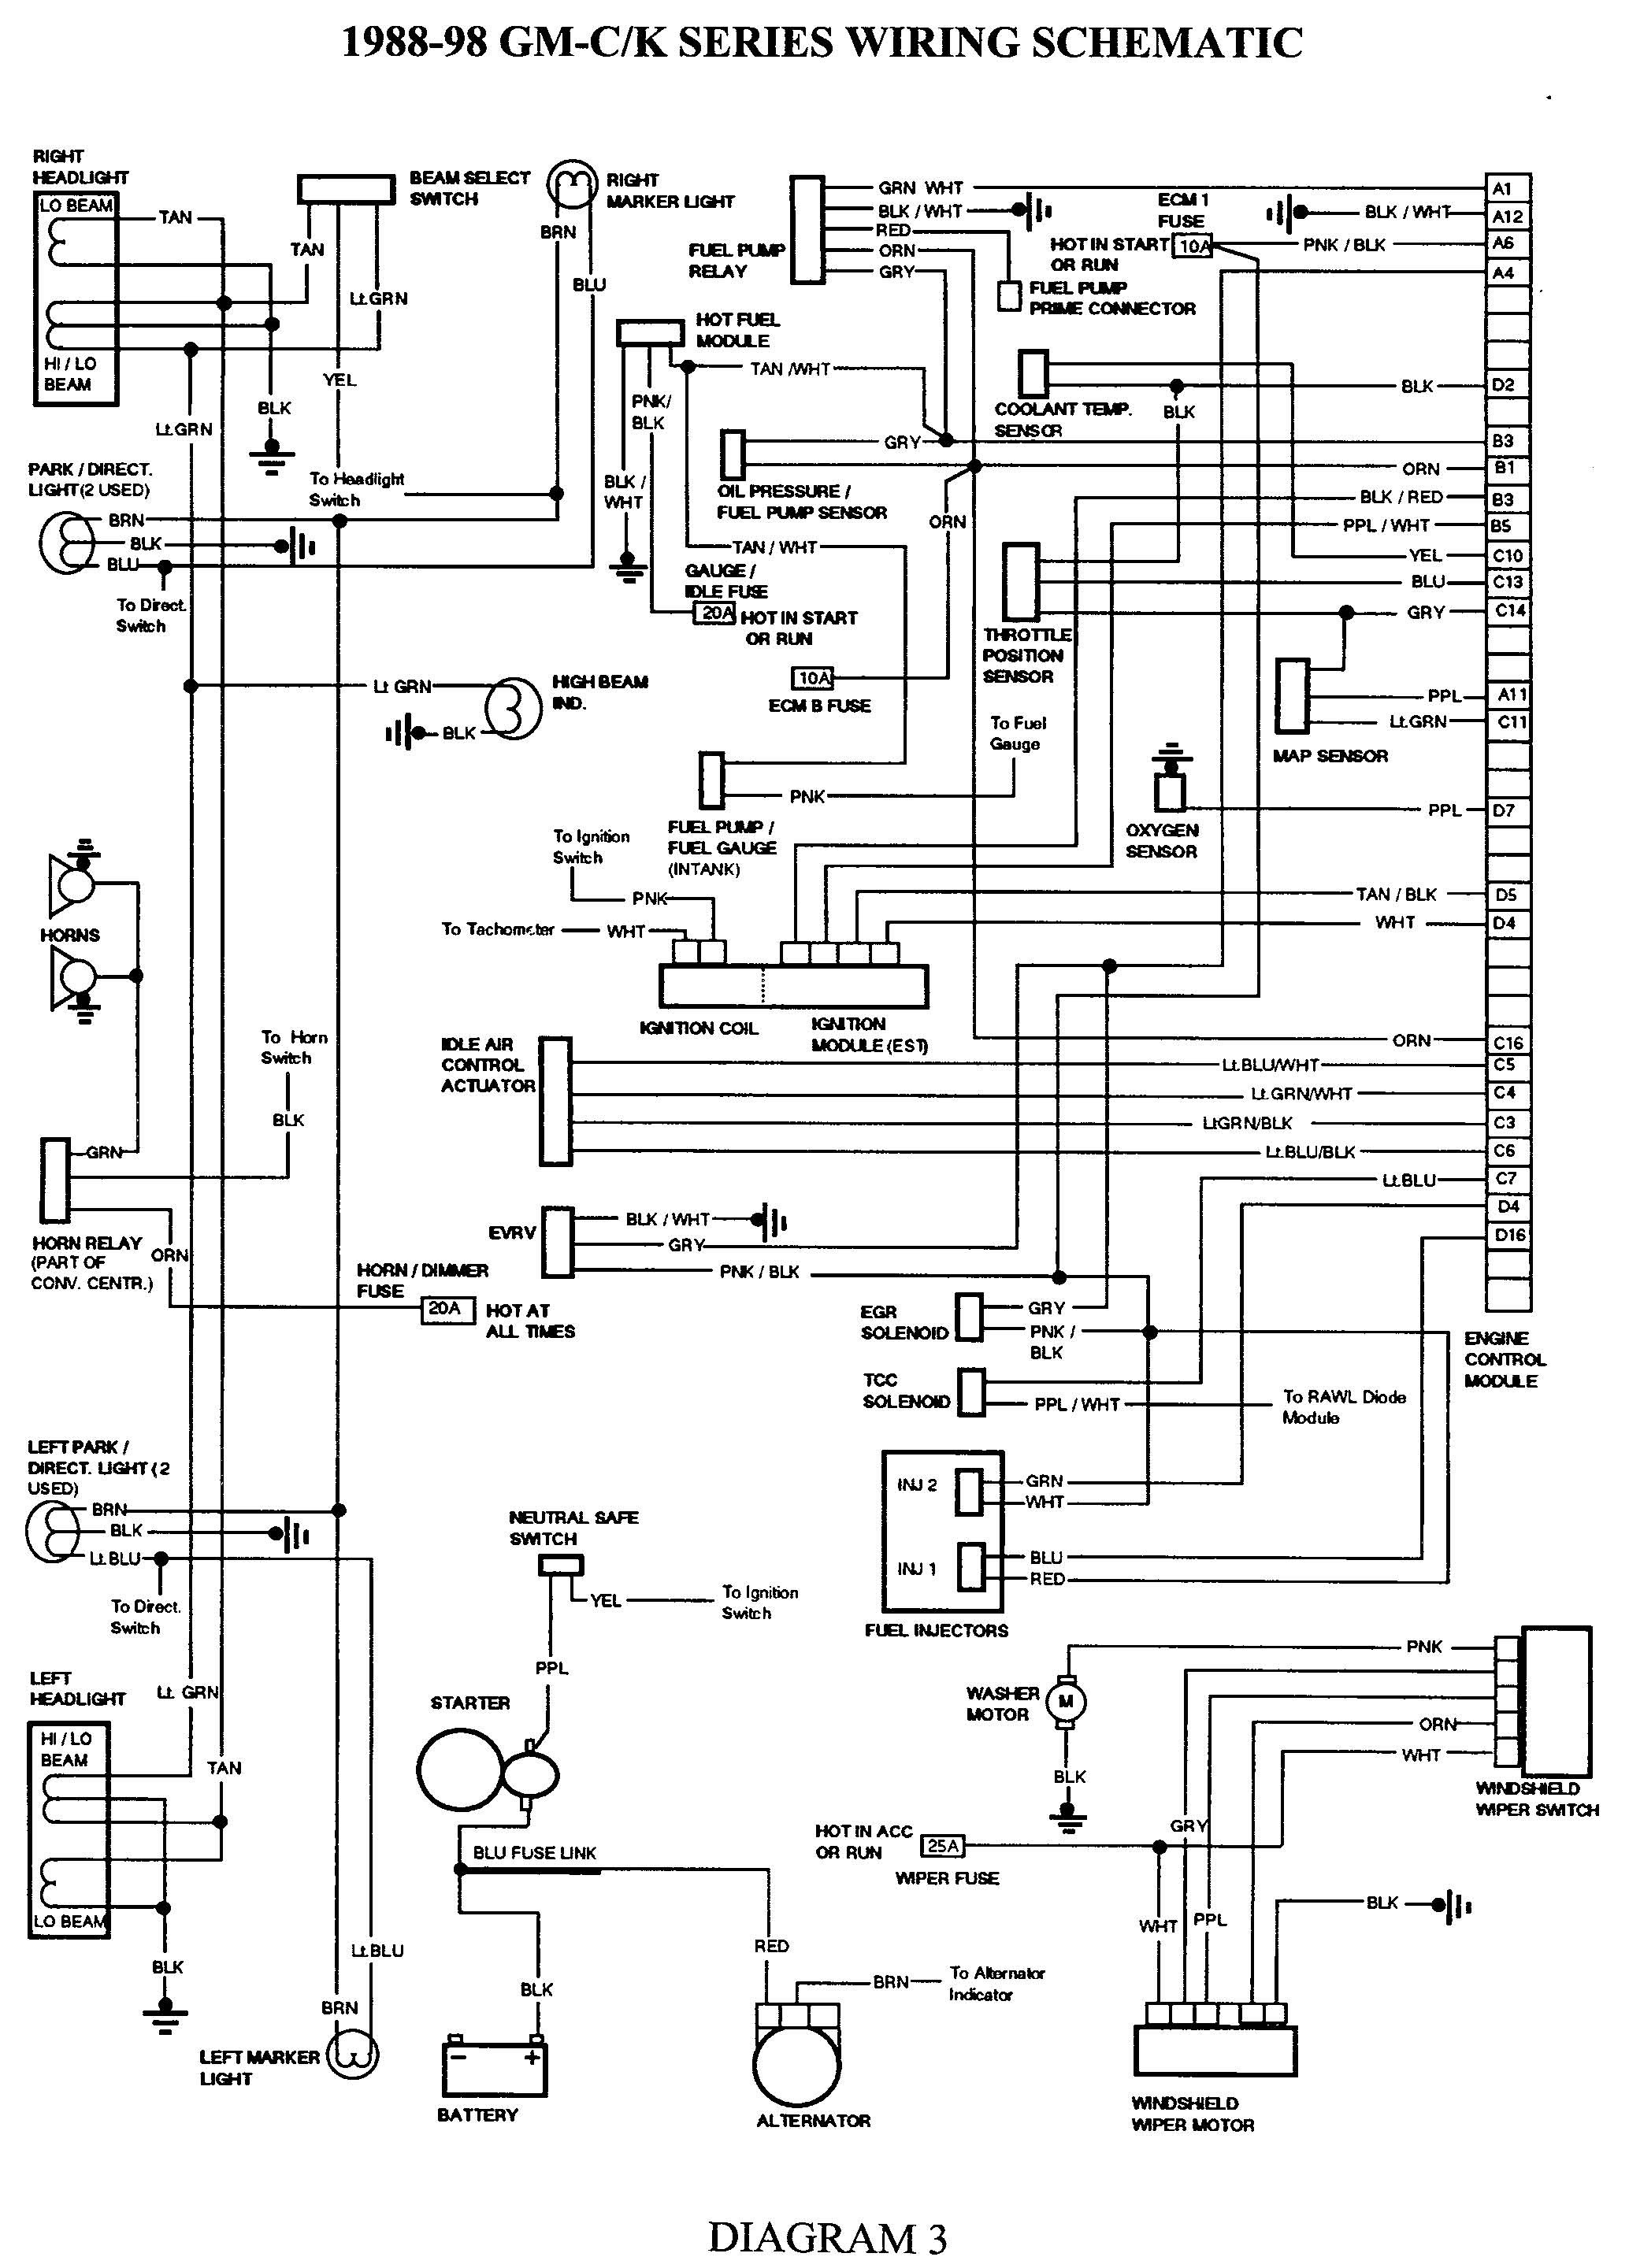 1984 Chevy Truck Electrical Wiring Diagram